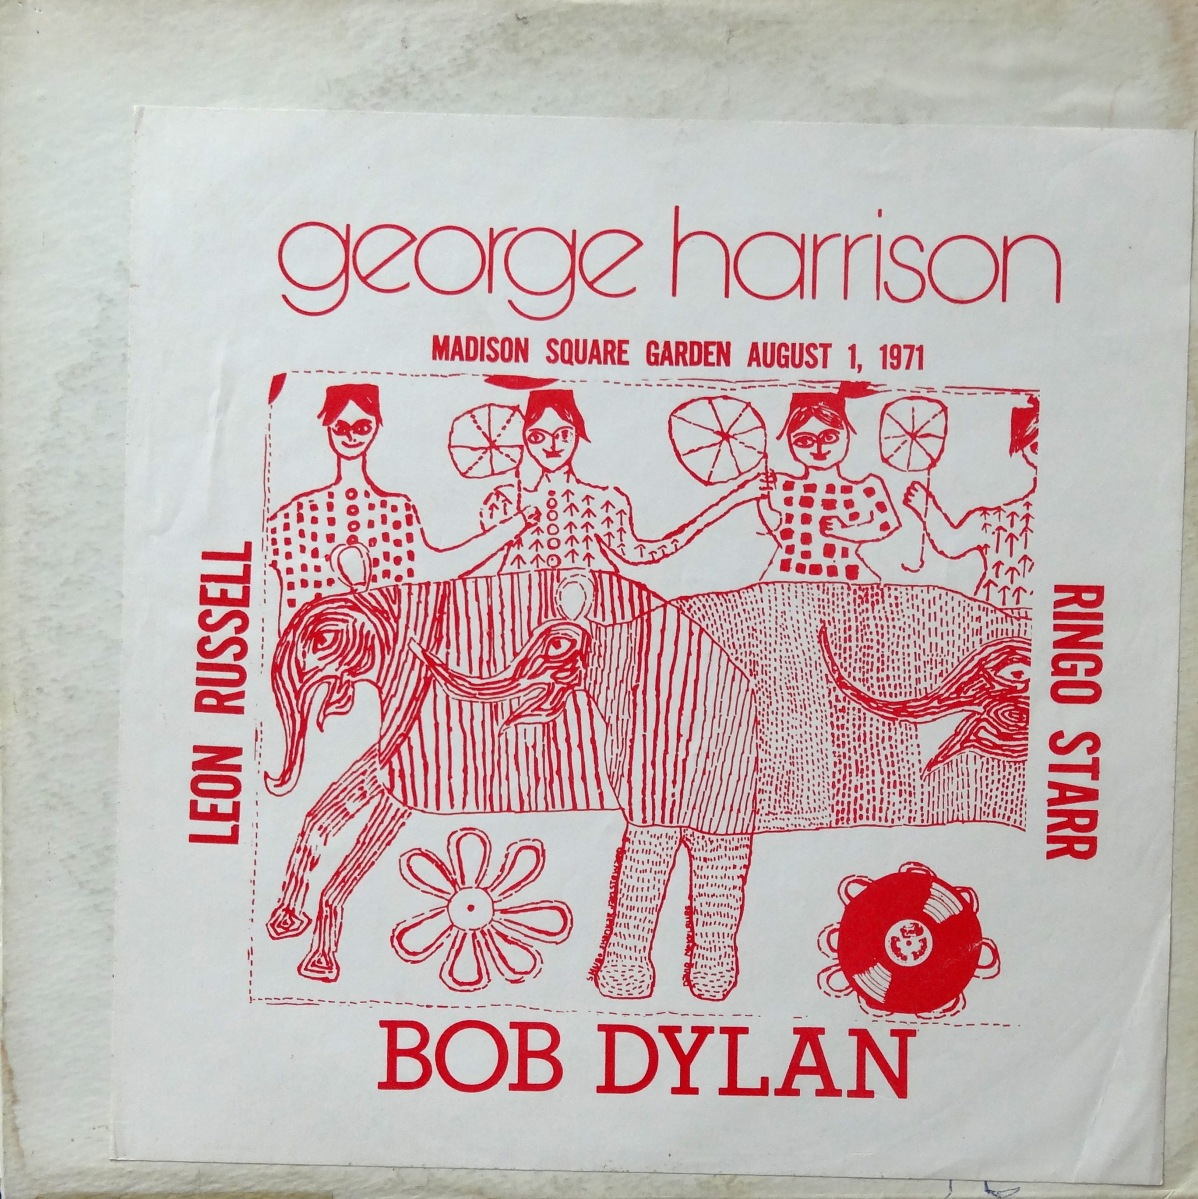 From The Stacks: George Harrison, 'Madison Square Garden August 1, 1971' (Bootleg)